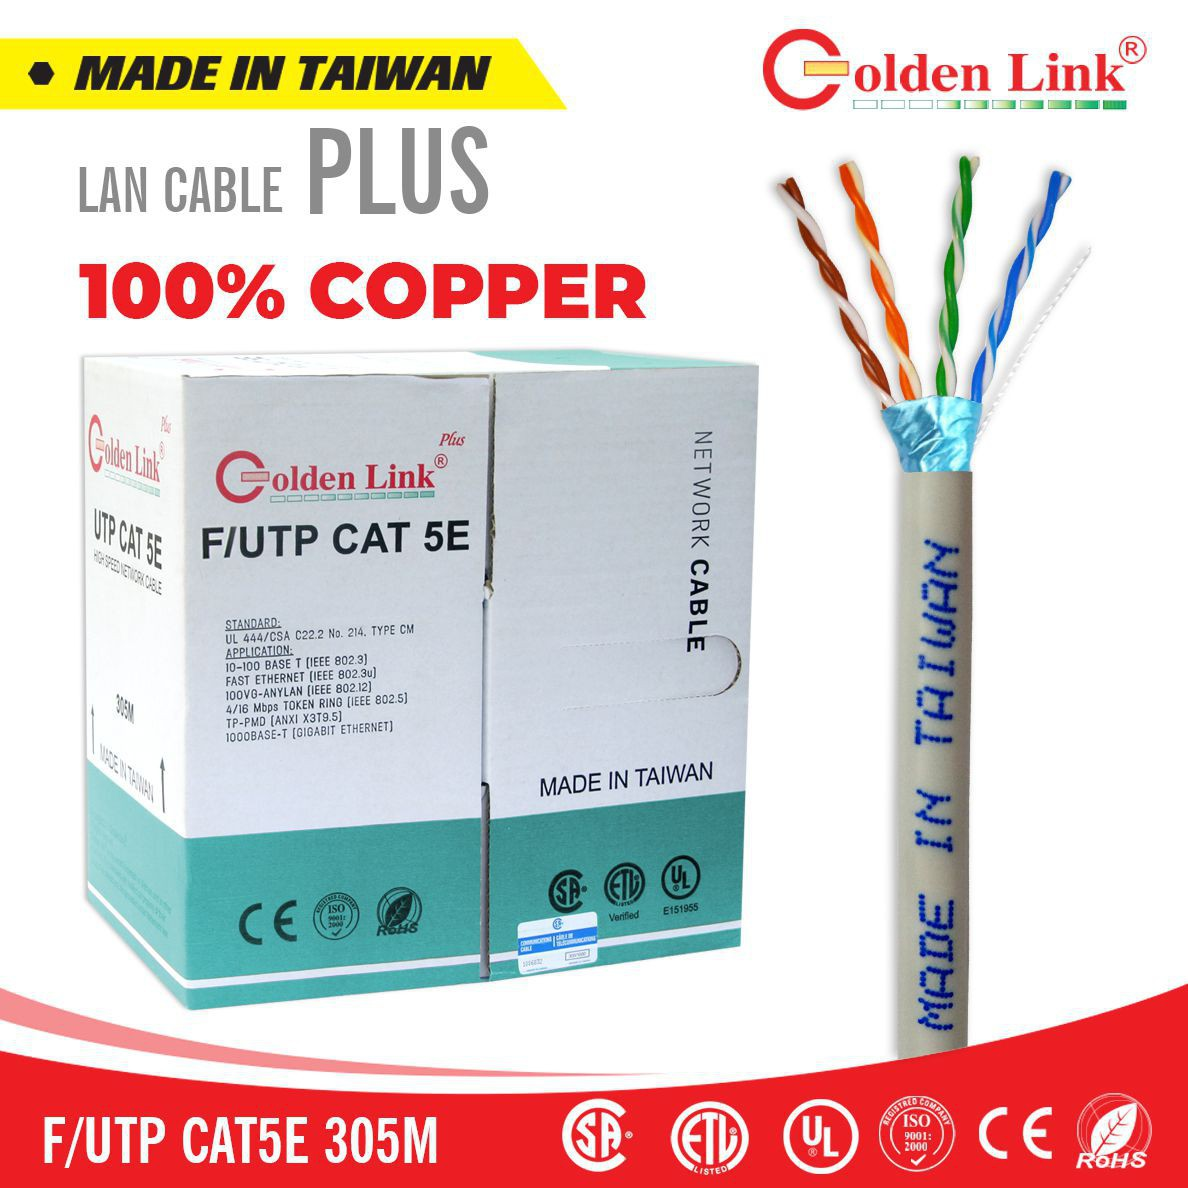 Golden Link Plus F/UTP CAT 5E network cable MADE IN TAIWAN